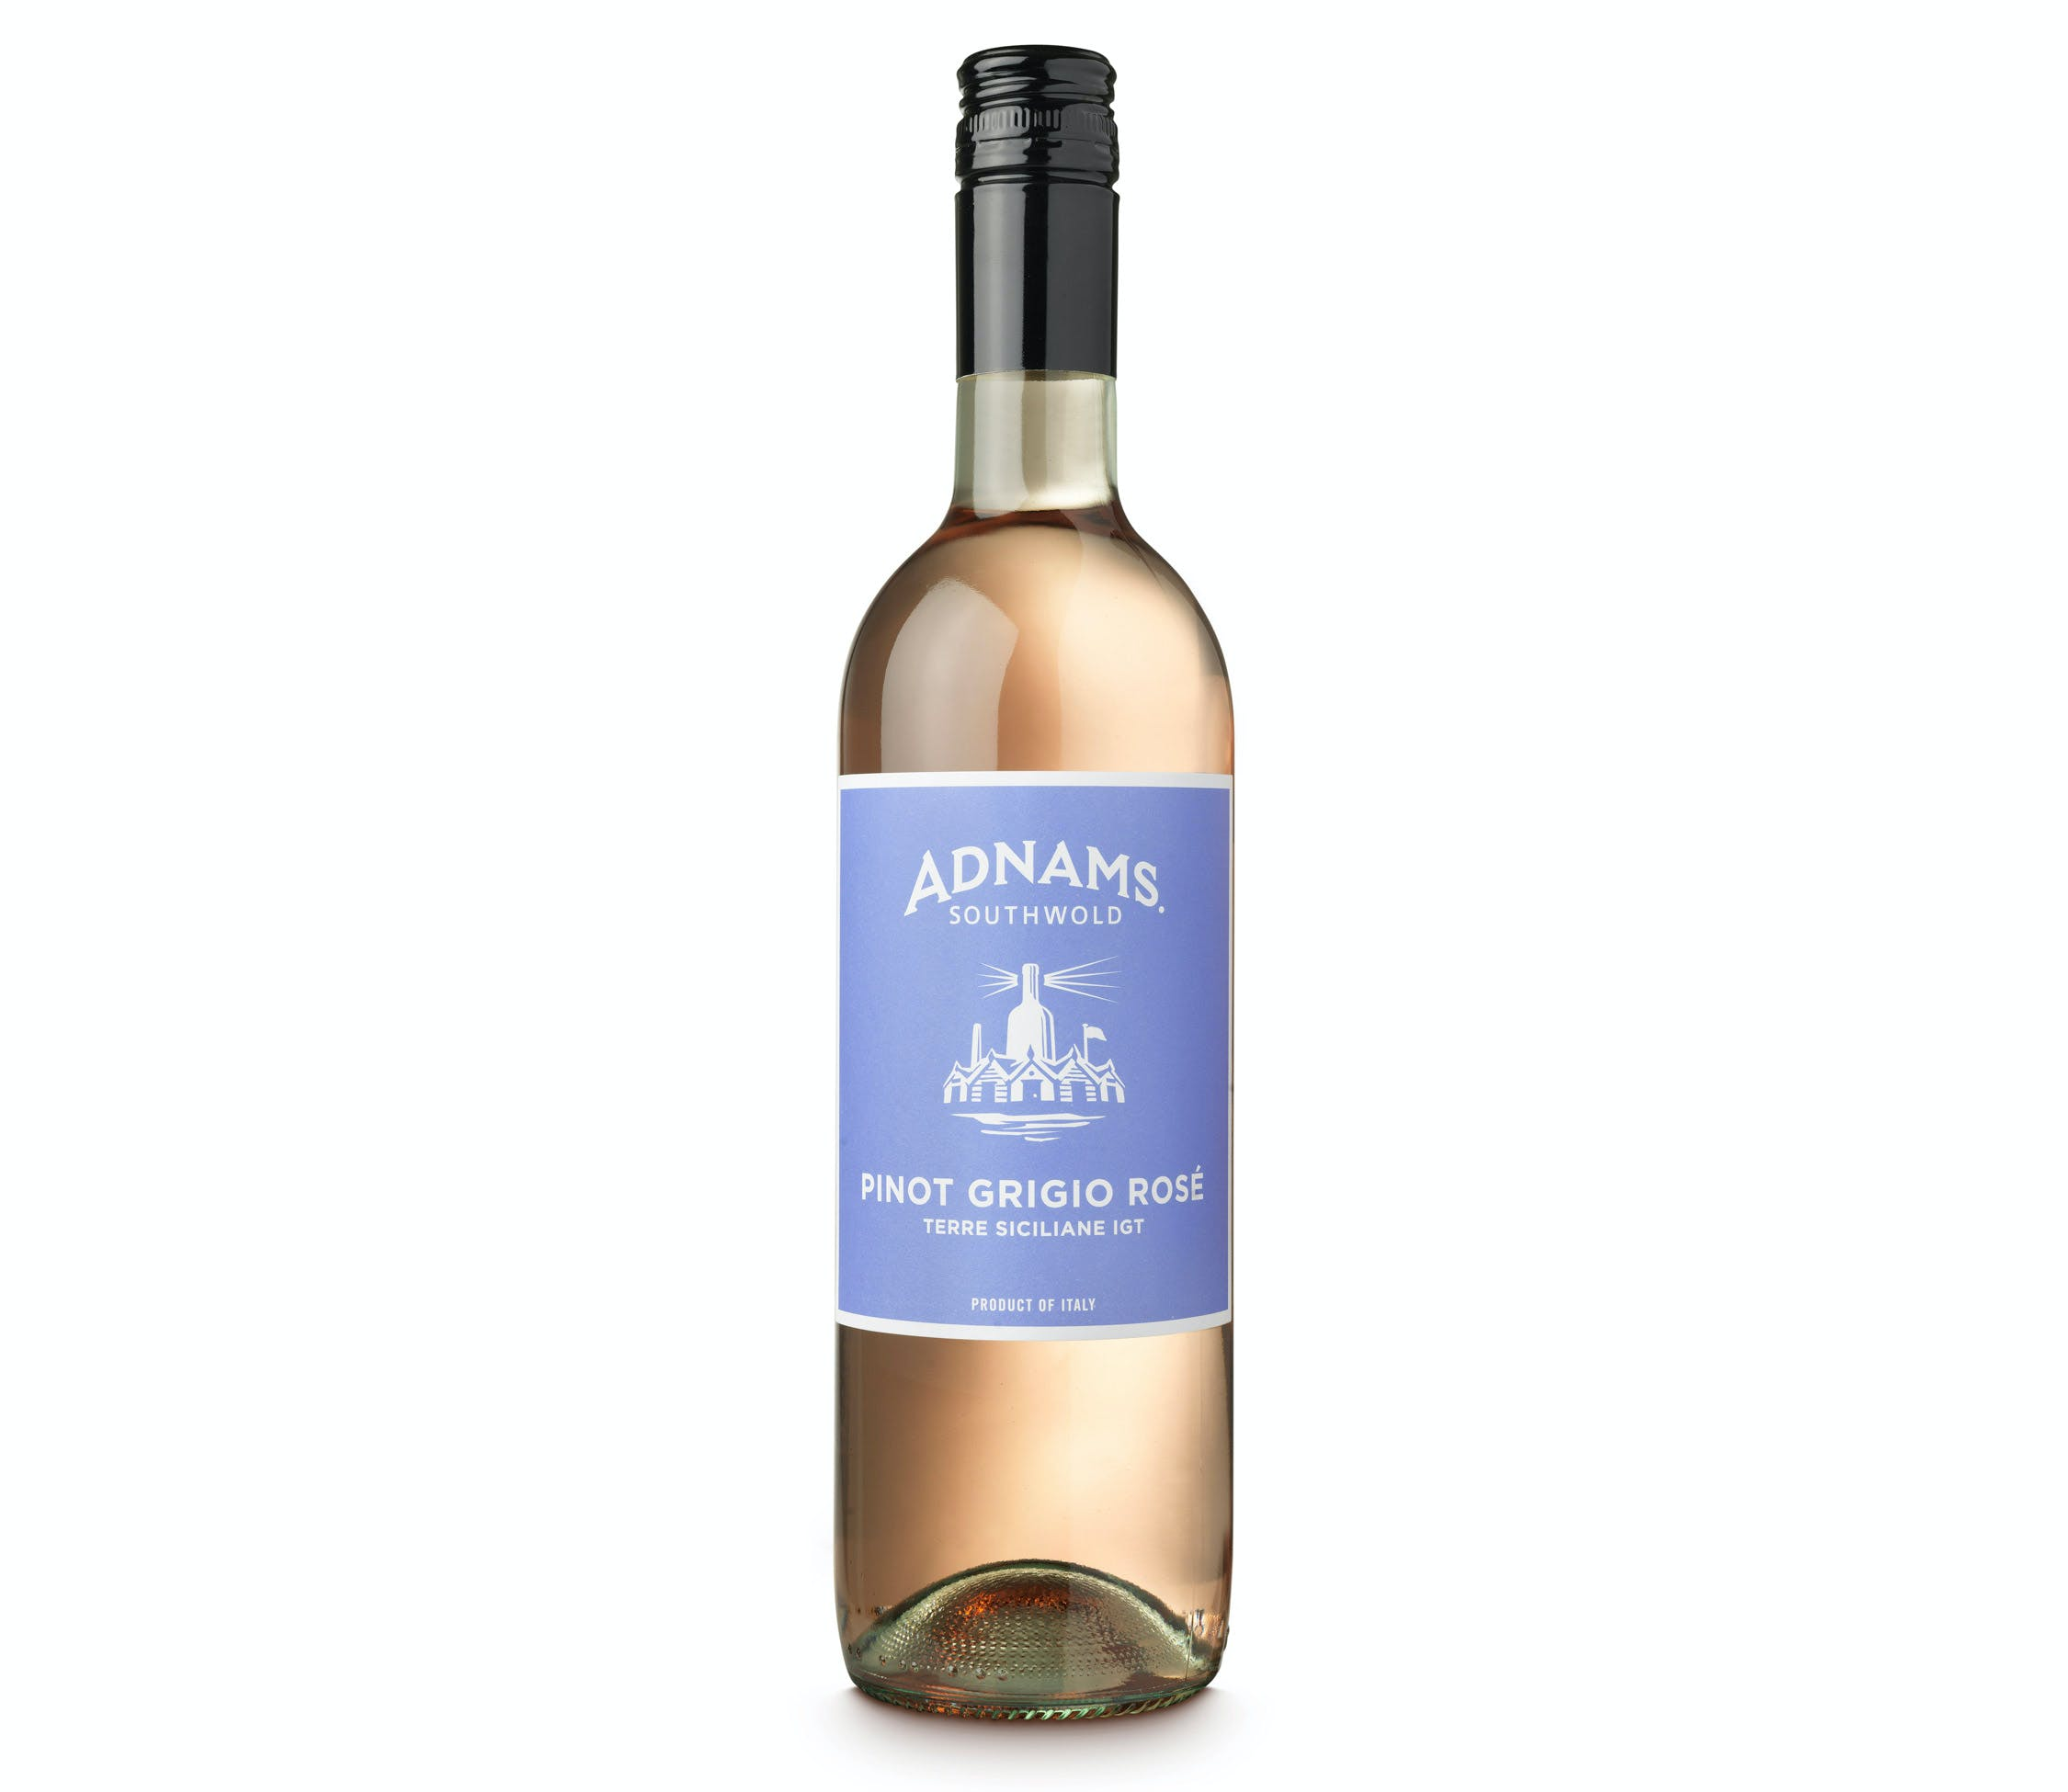 Best Adnams Pinot Grigio Blush, Terre Siciliane Stockists